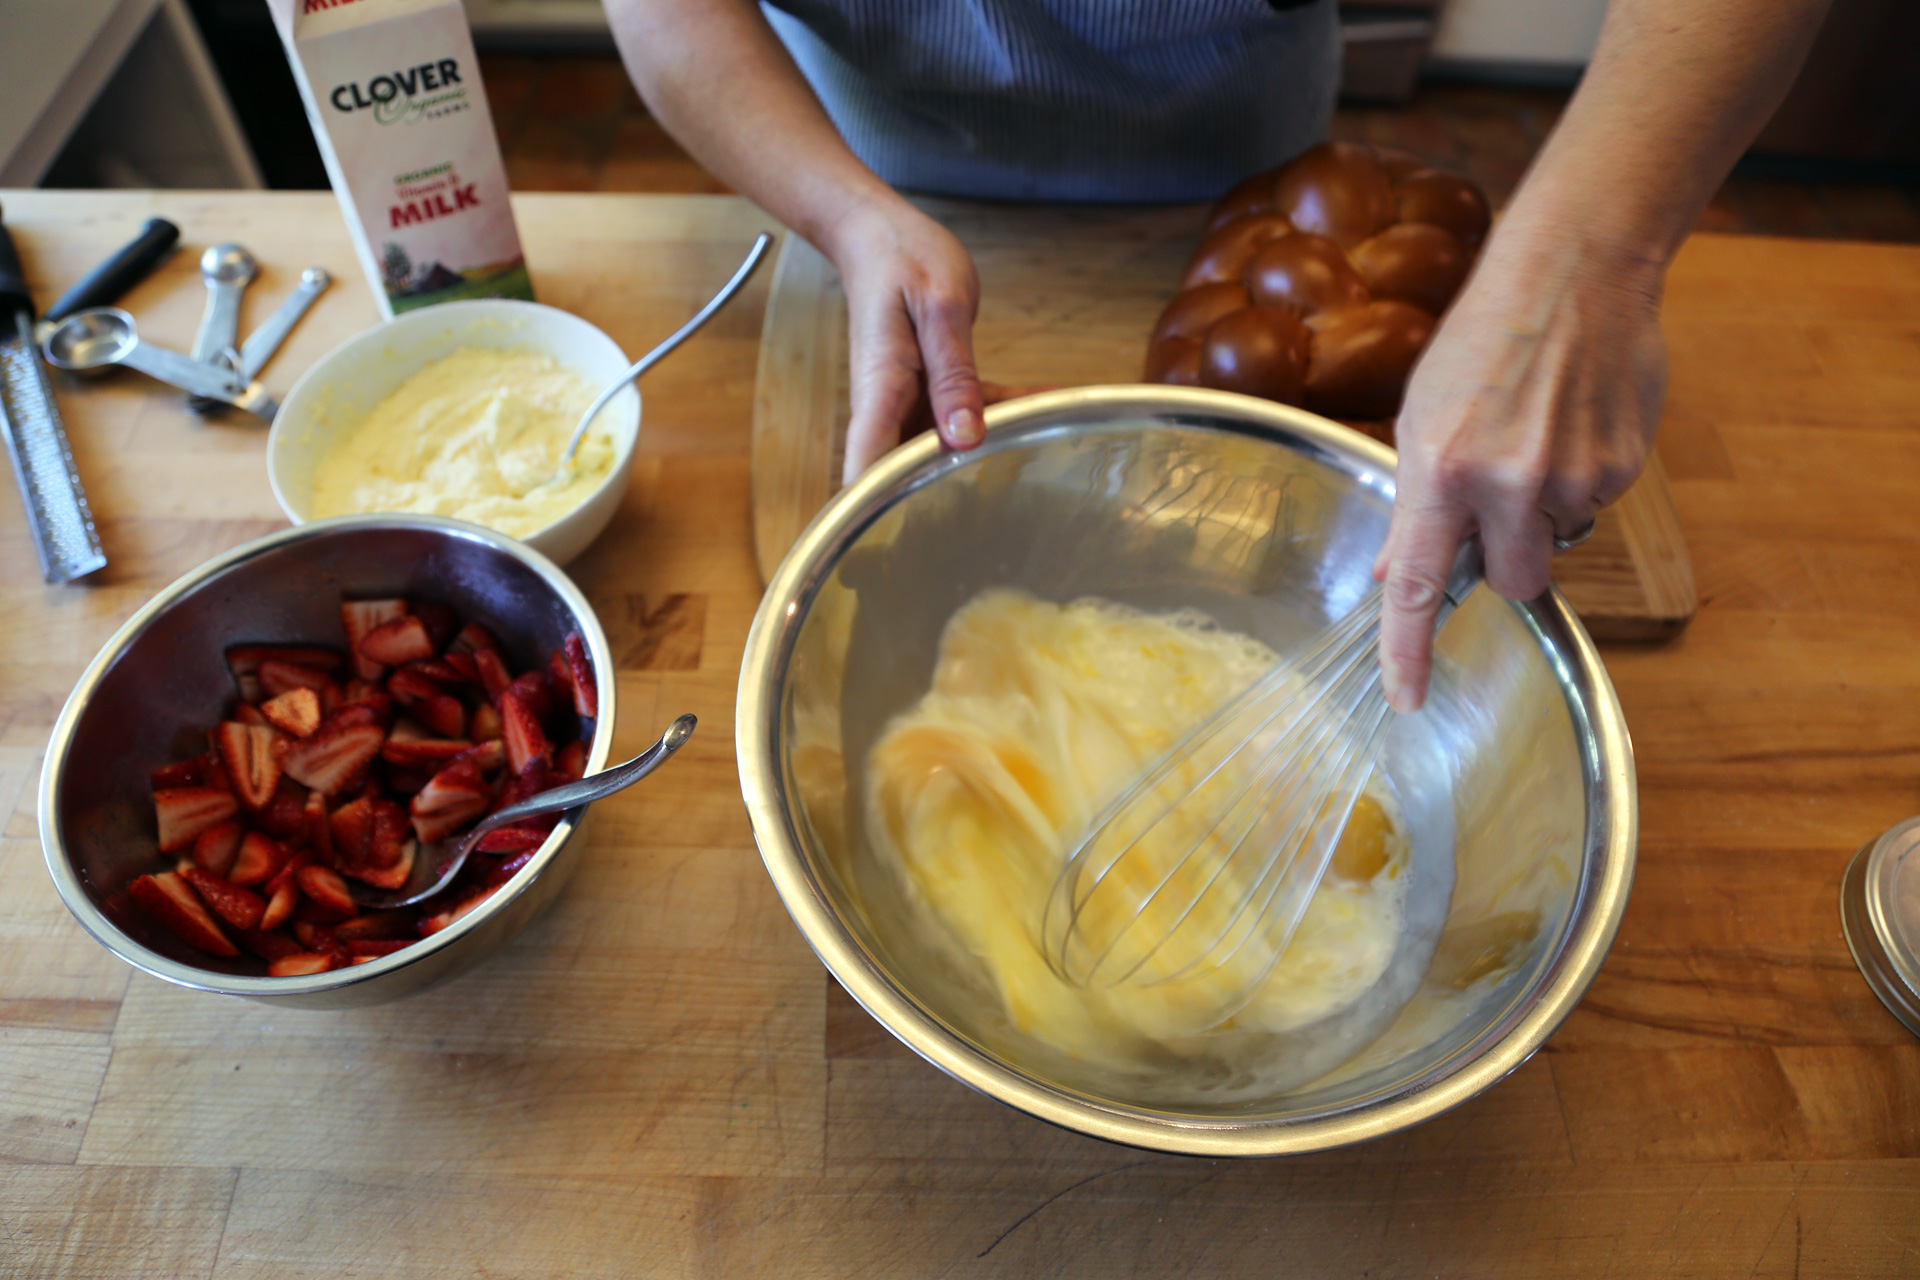 In a large shallow bowl, whisk together the eggs, milk, vanilla extract, and a pinch of salt.